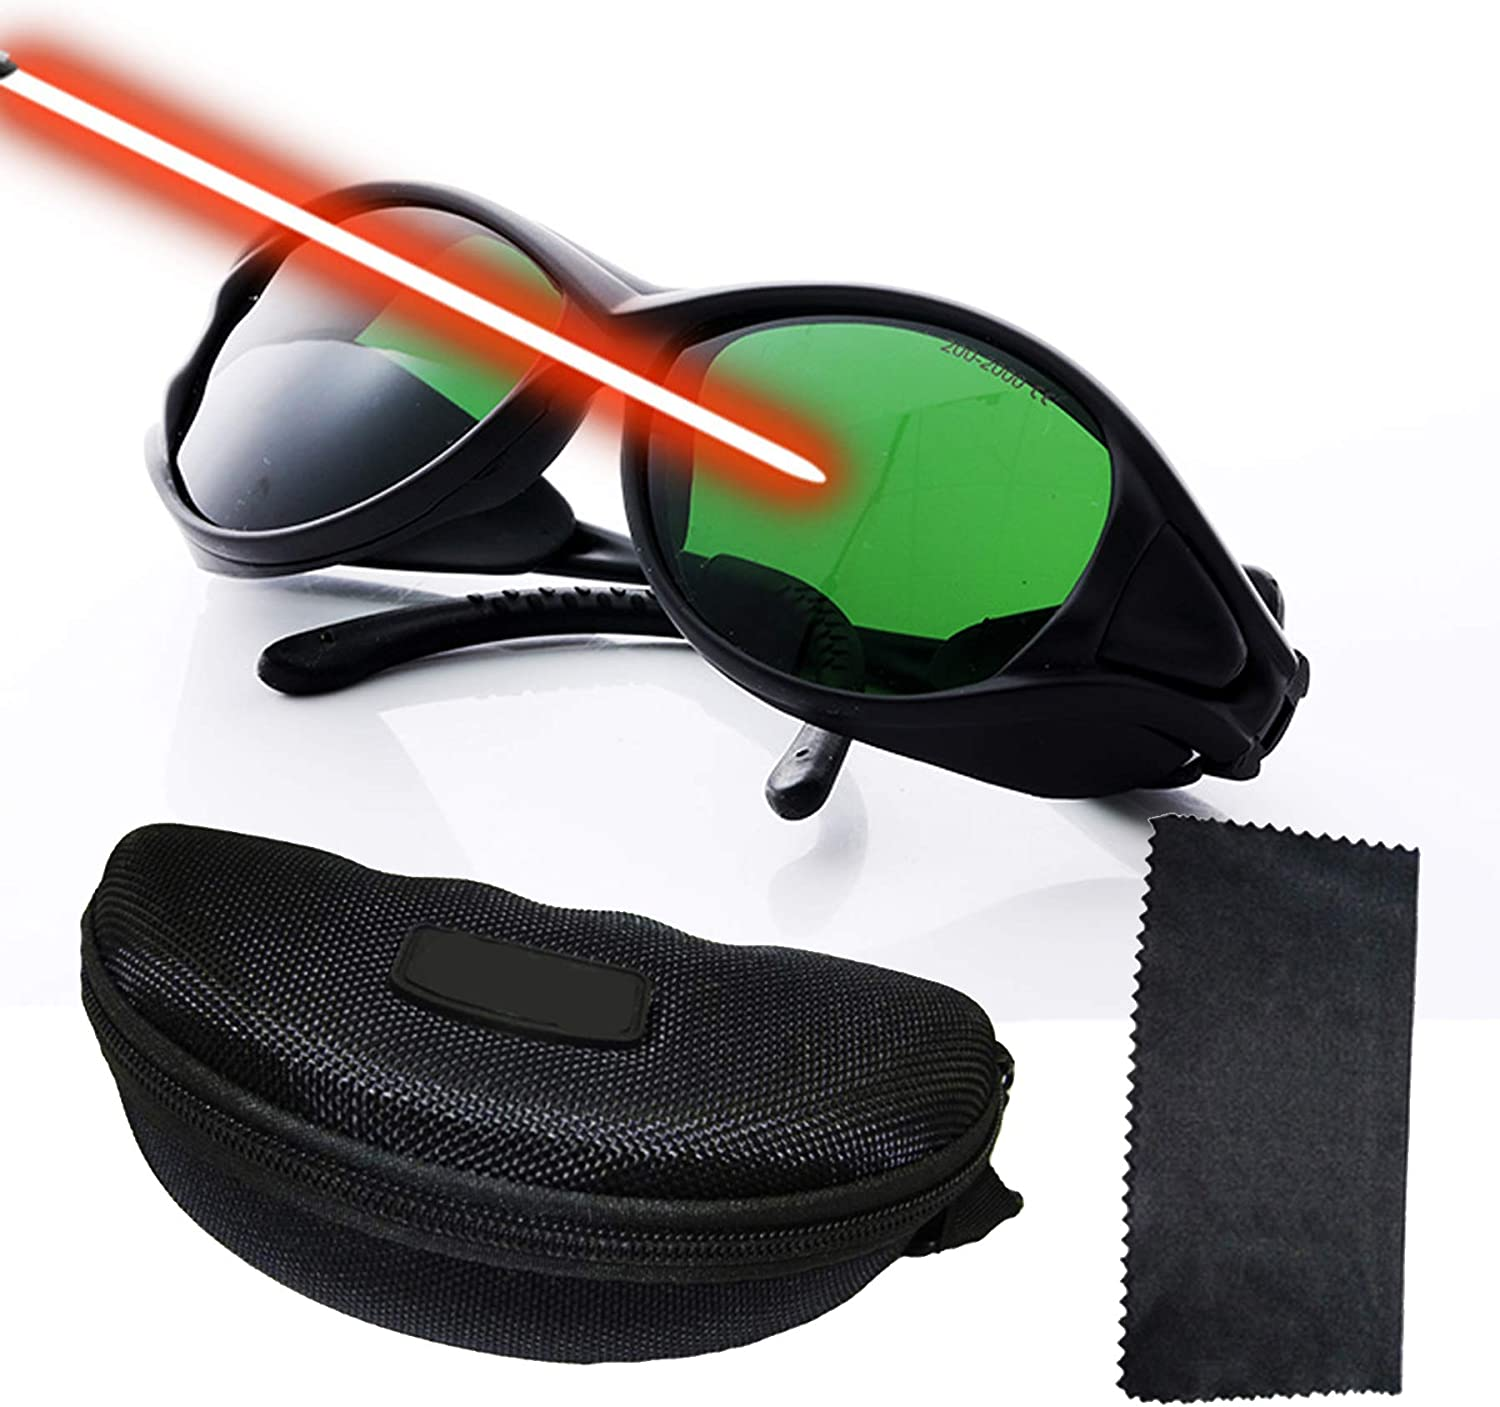 Professional Laser Safety Glasses for 405nm,445nm,450nm,532nm,850nm Laser and 190nm-490nm Wavelength Violet/Blue/Red Laser Protection Goggles